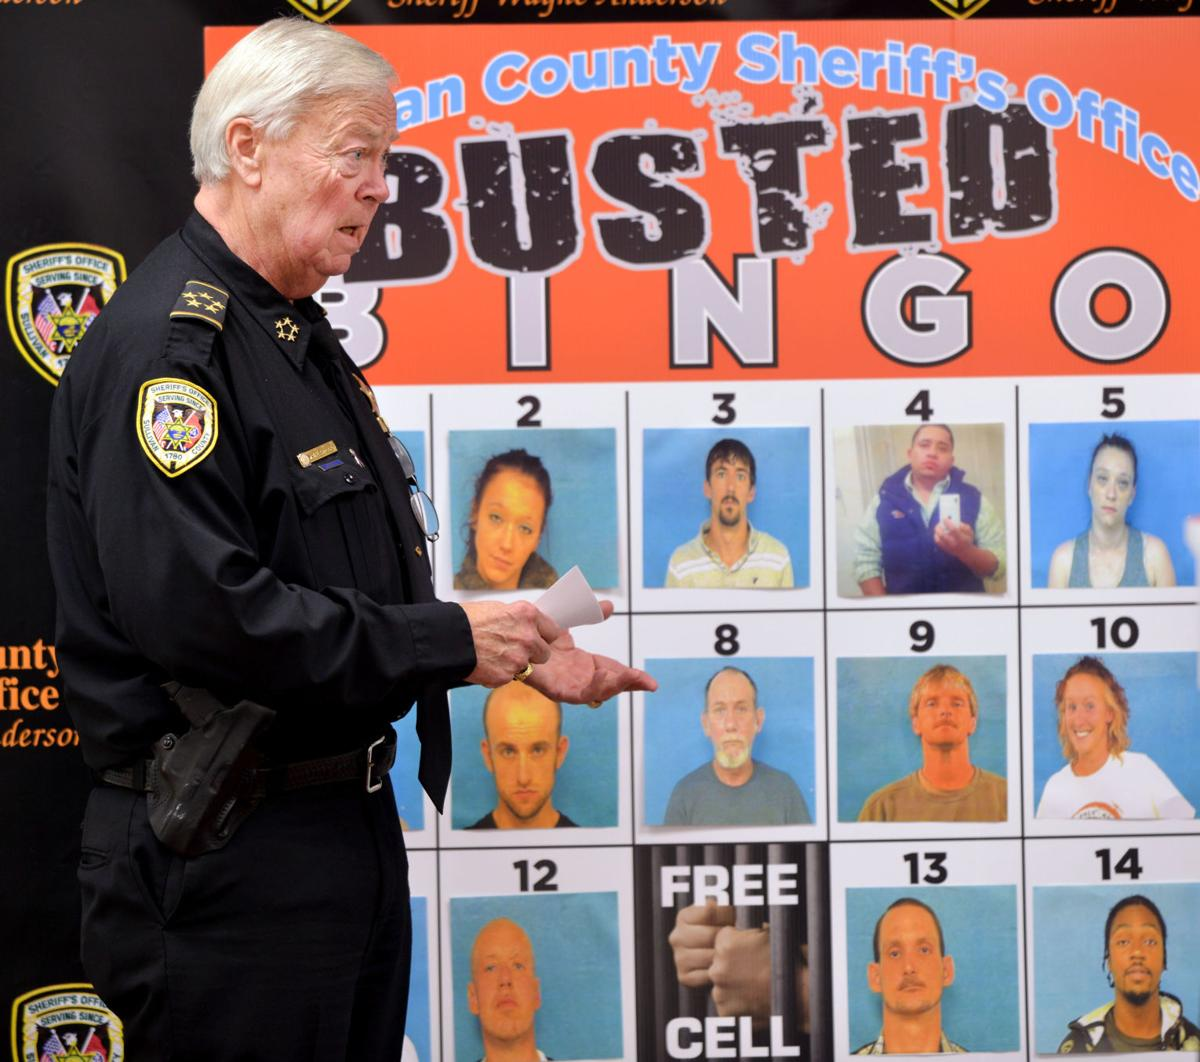 Busted Bingo' new effort to serve arrest warrants | News